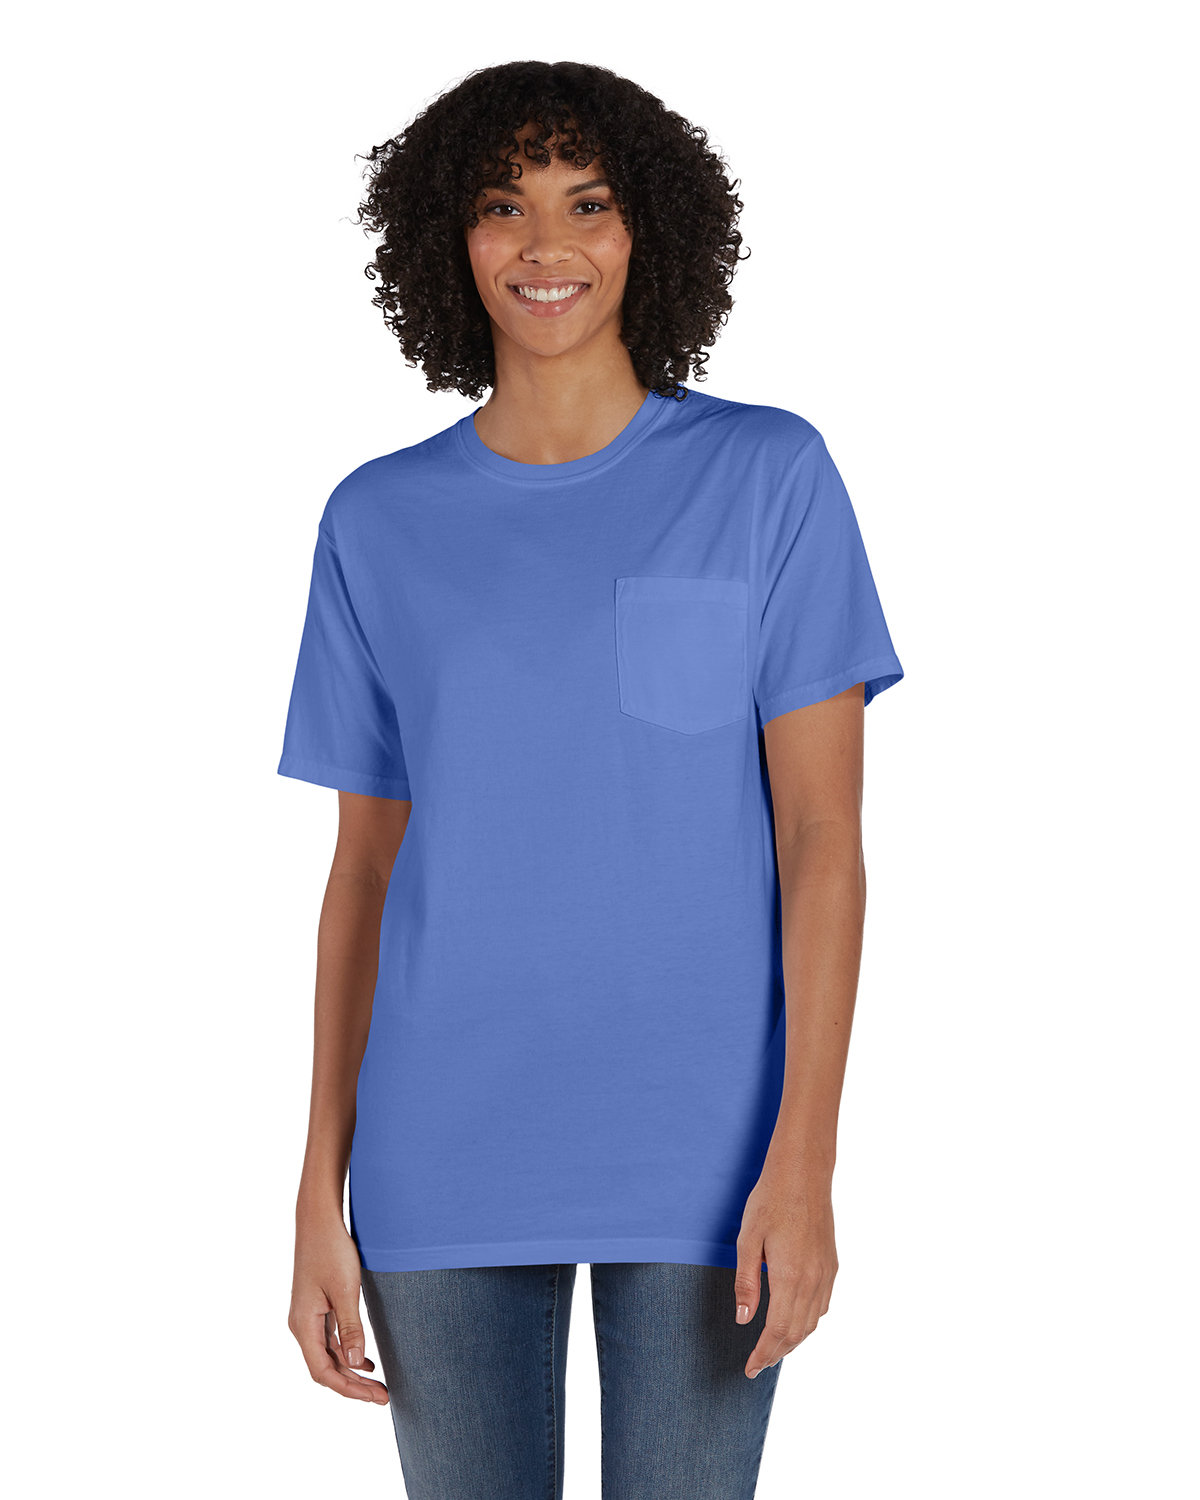 ComfortWash by Hanes Unisex Garment-Dyed T-Shirt with Pocket DEEP FORTE